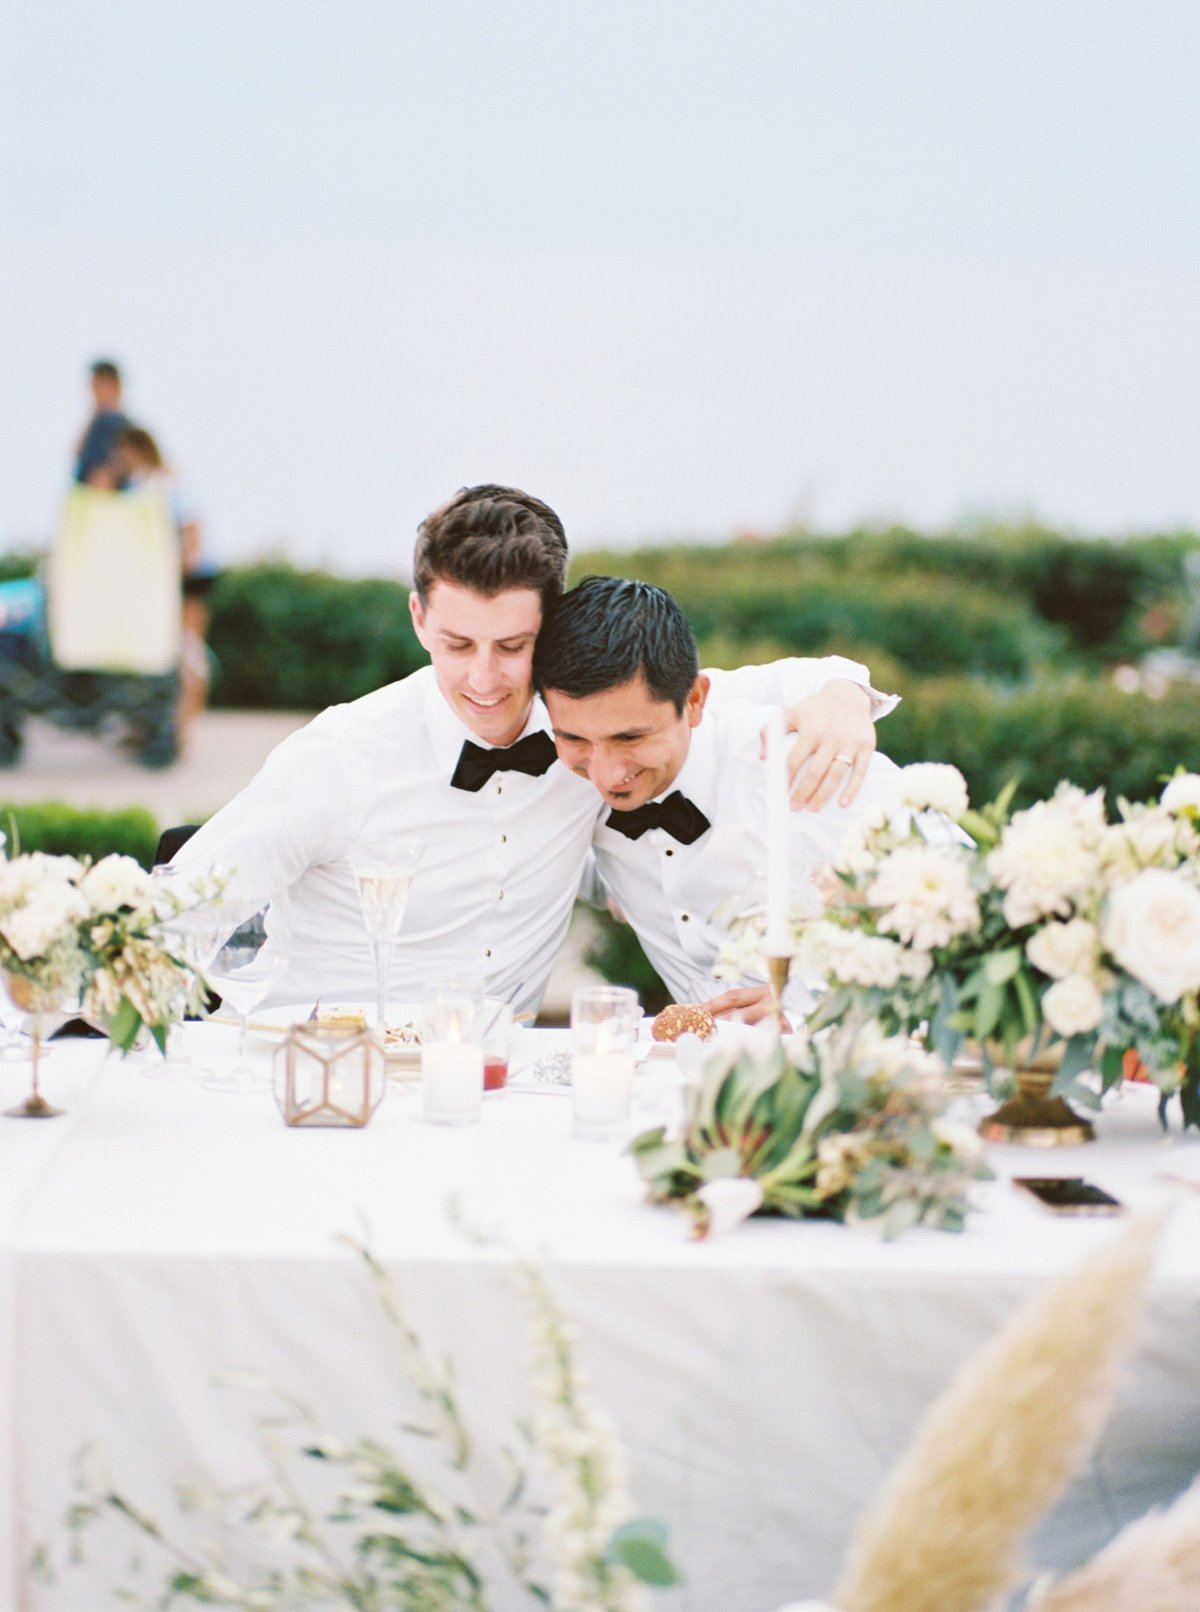 nicoleclareyphotography_evan+jeff_laguna beach_wedding_0052